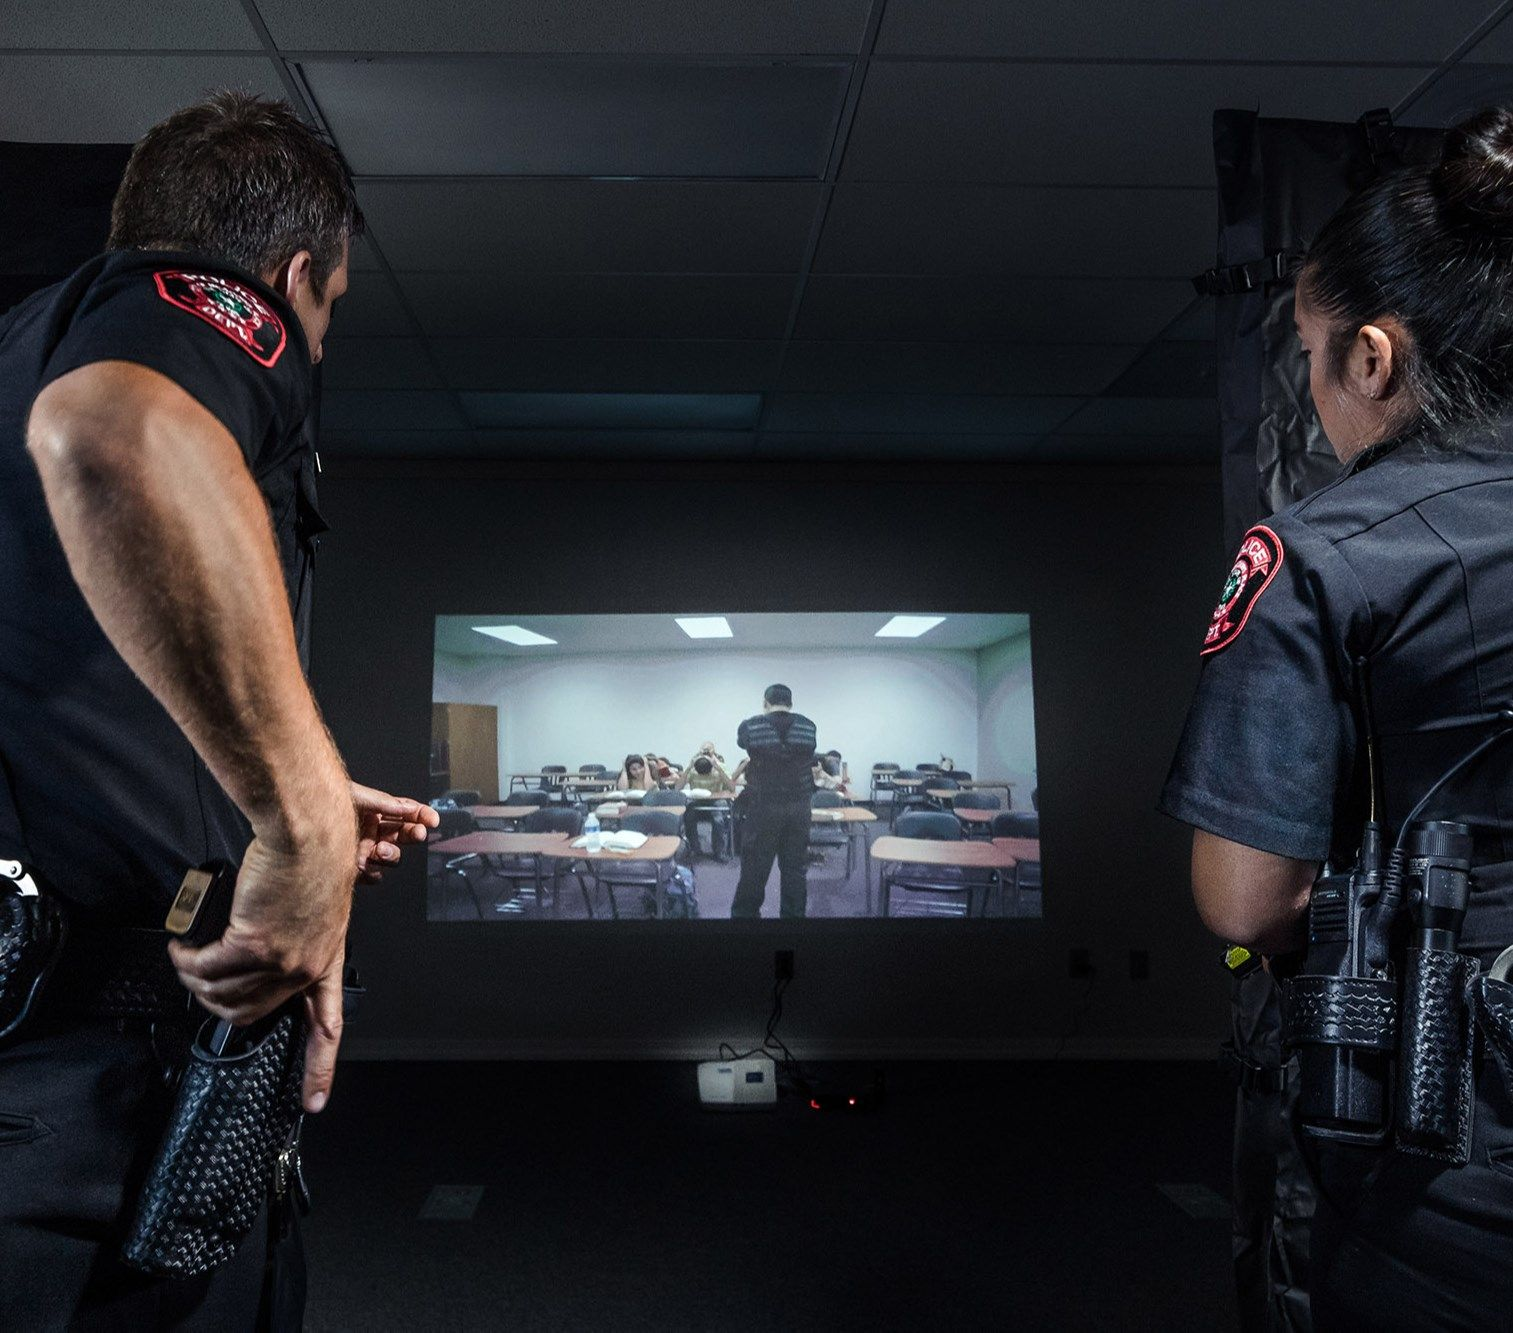 Policeone News Why I Believe In Simulation Training One Officer S Story Capt Michael Curry Appreciates The Realism Police Activities Train Simulation